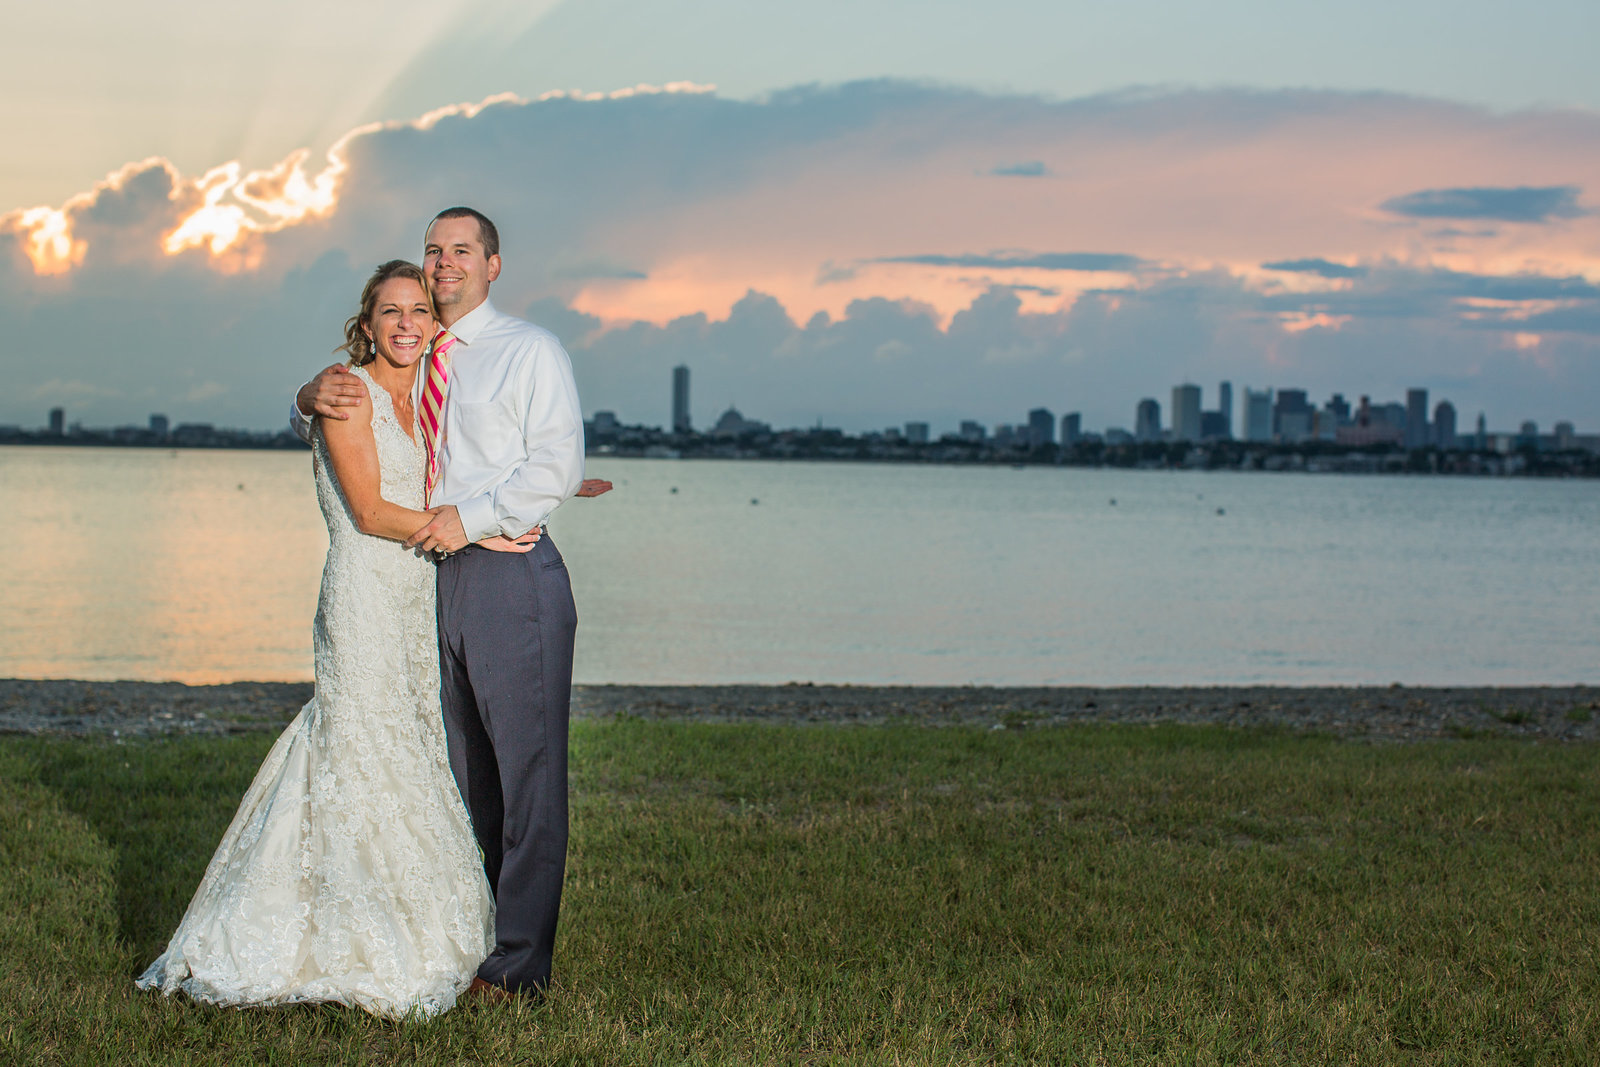 ThompsonIsland_WeddingPhotography_Michelle Kaye Photography-12292